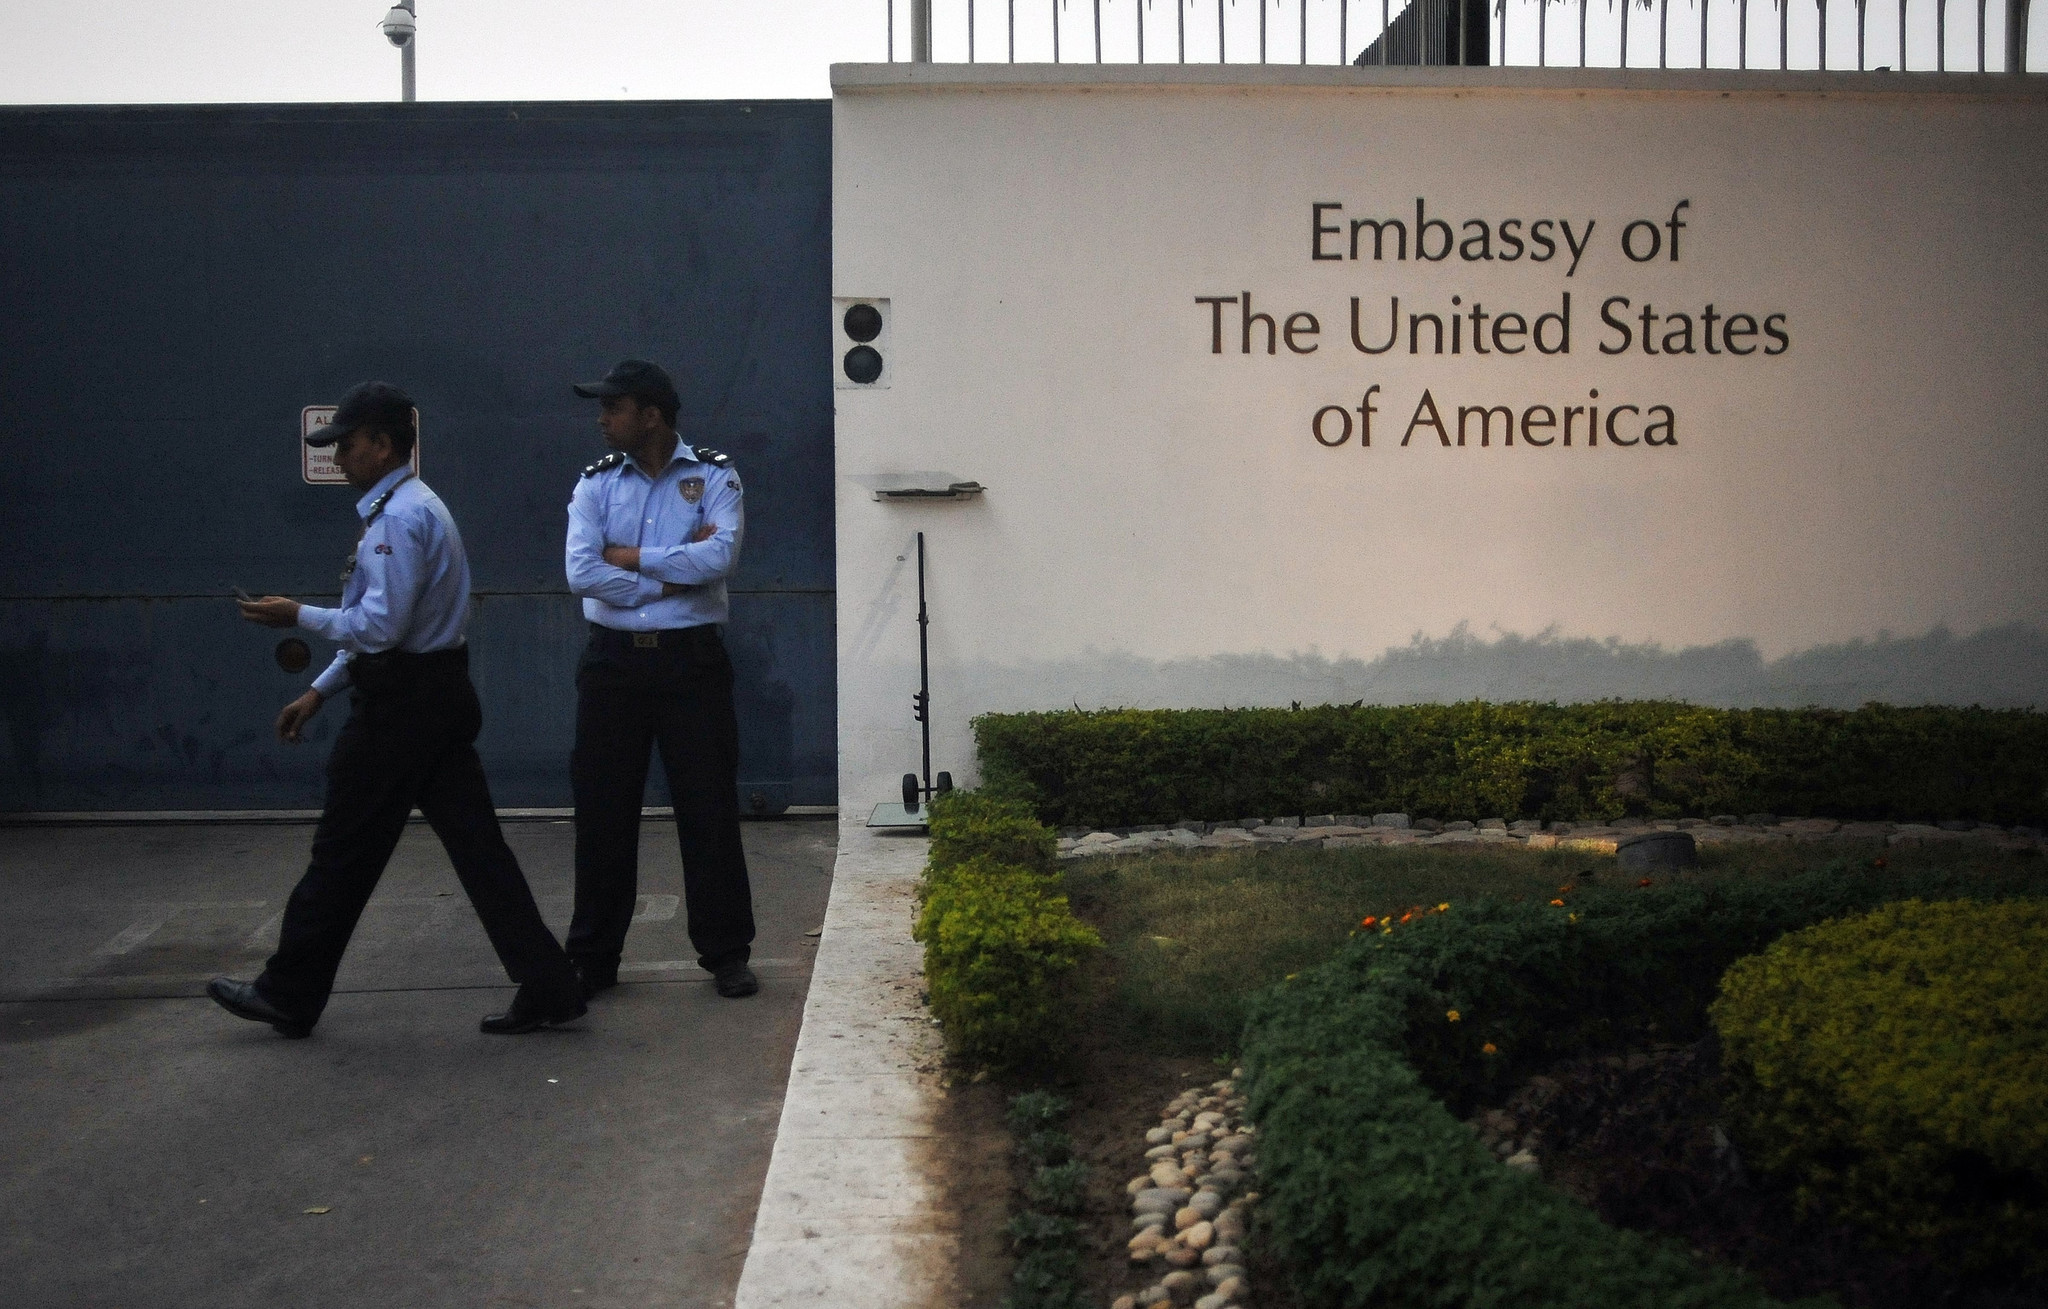 Driver accused of raping 5-year-old girl on U.S. Embassy grounds in India